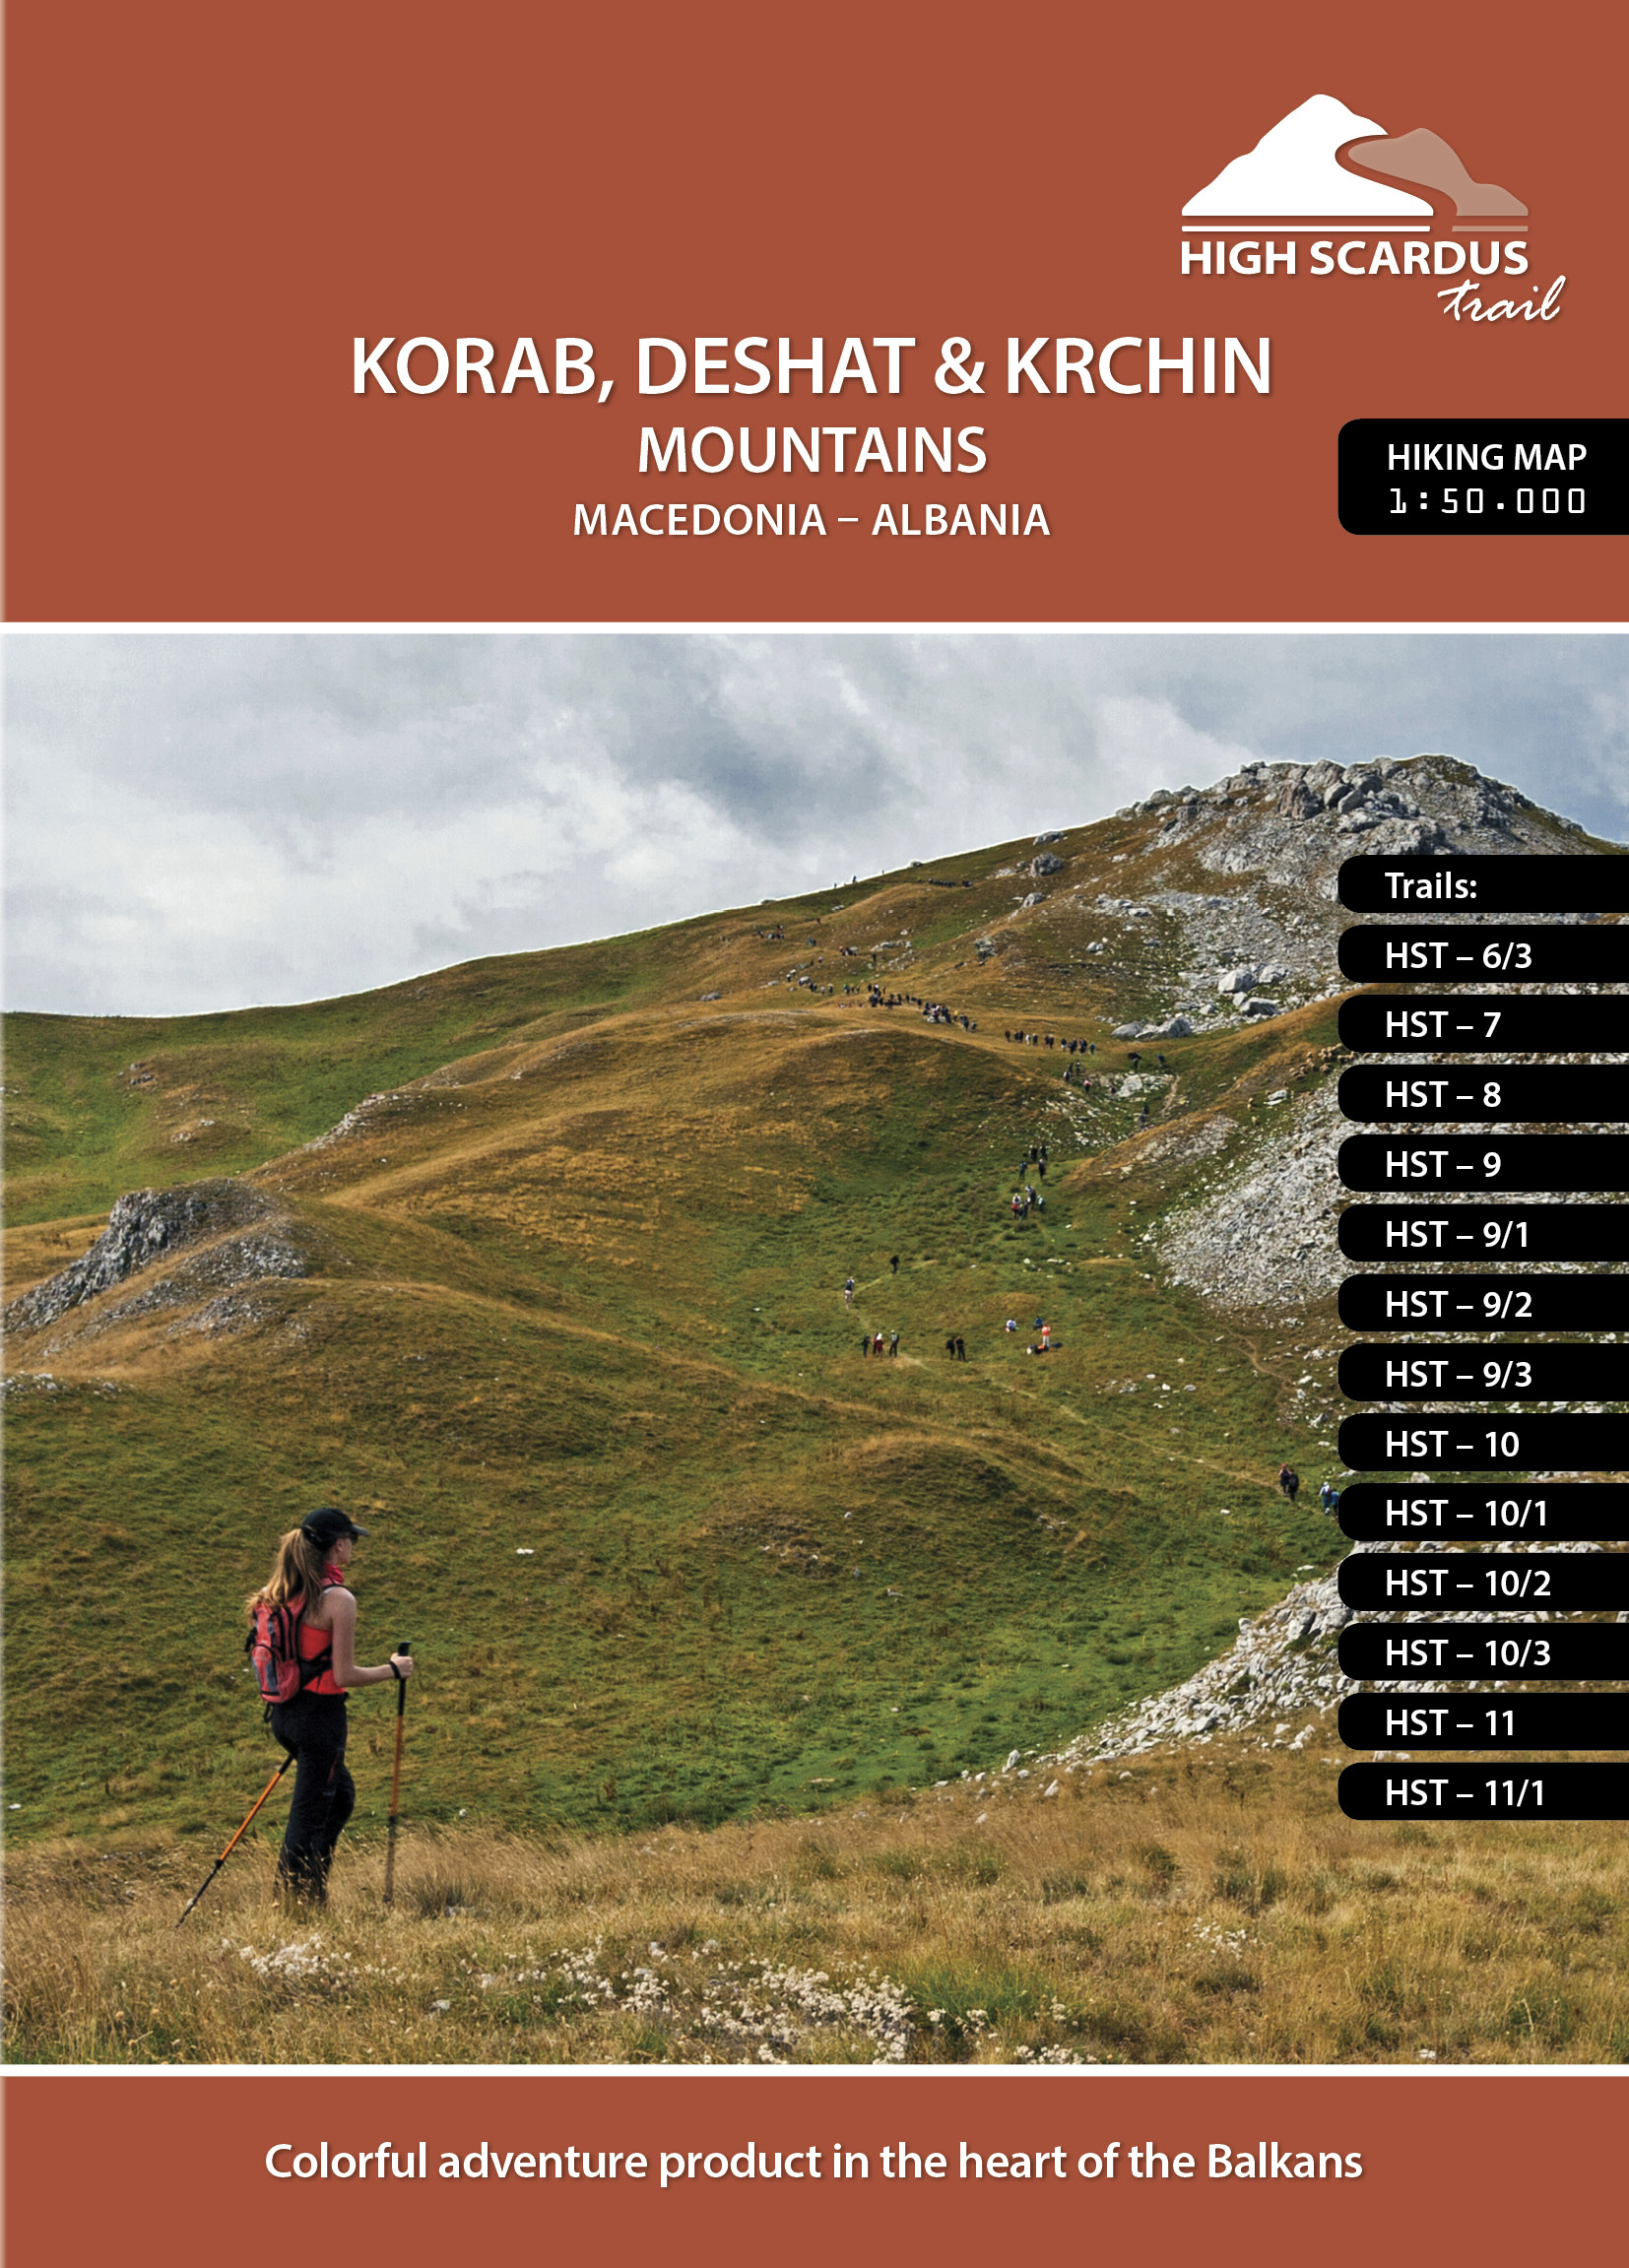 High Scardus Trail Map 4/6 Korab, Deshat, Krchin Mountains